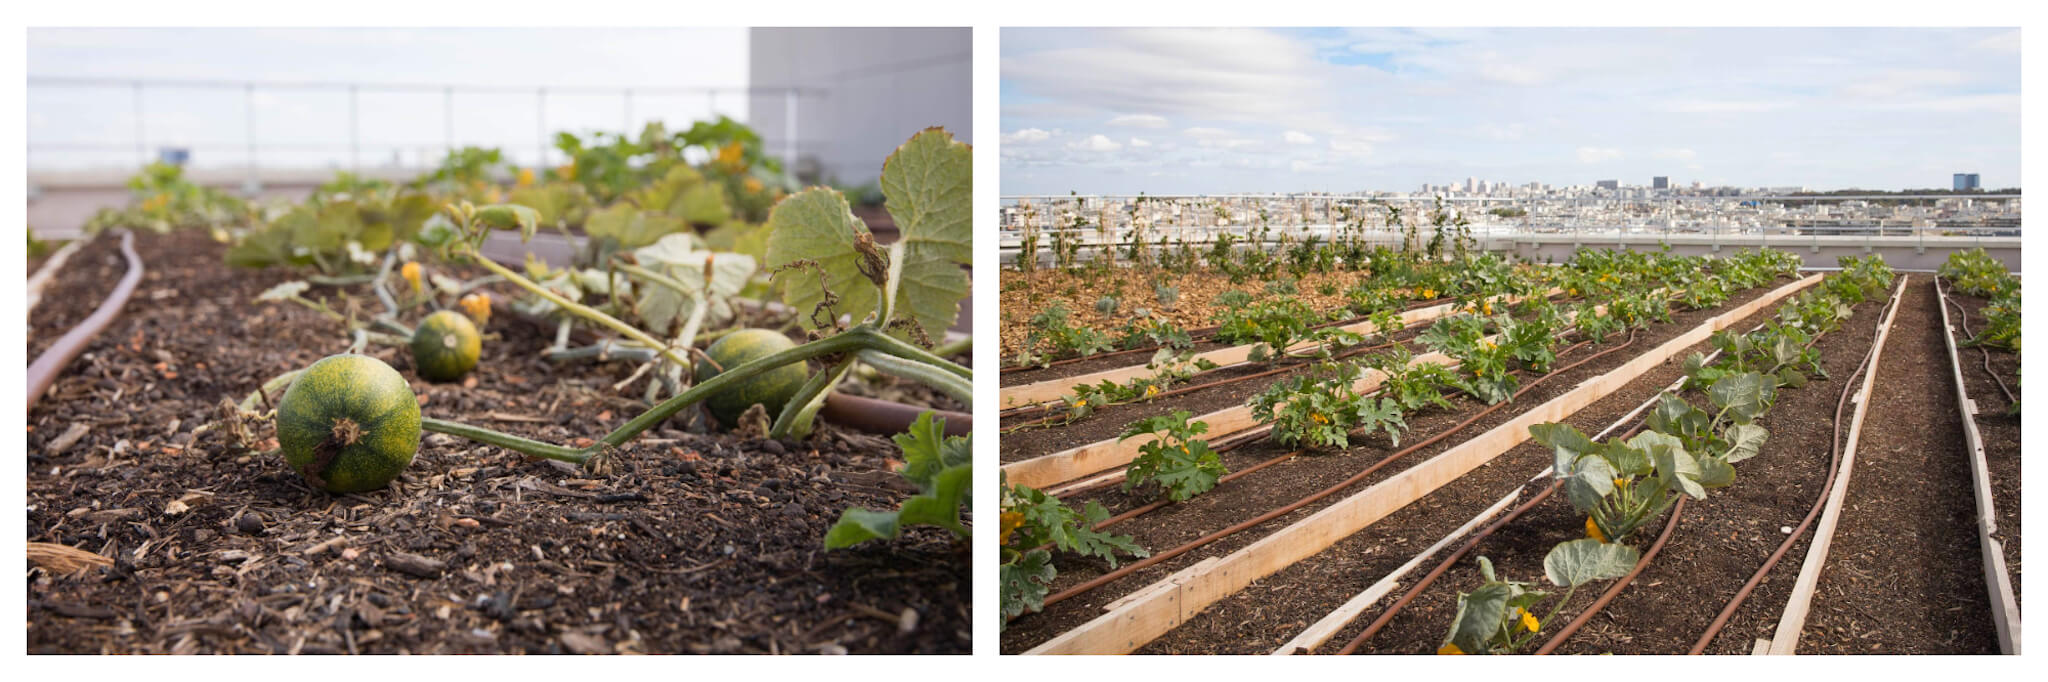 On left: Baby watermelons sit in the dirt under the sun. On right: Leafy plants stretch out in orderly rows. Both located at Agripolis, a large urban farm at the Porte de Versailles in Paris.